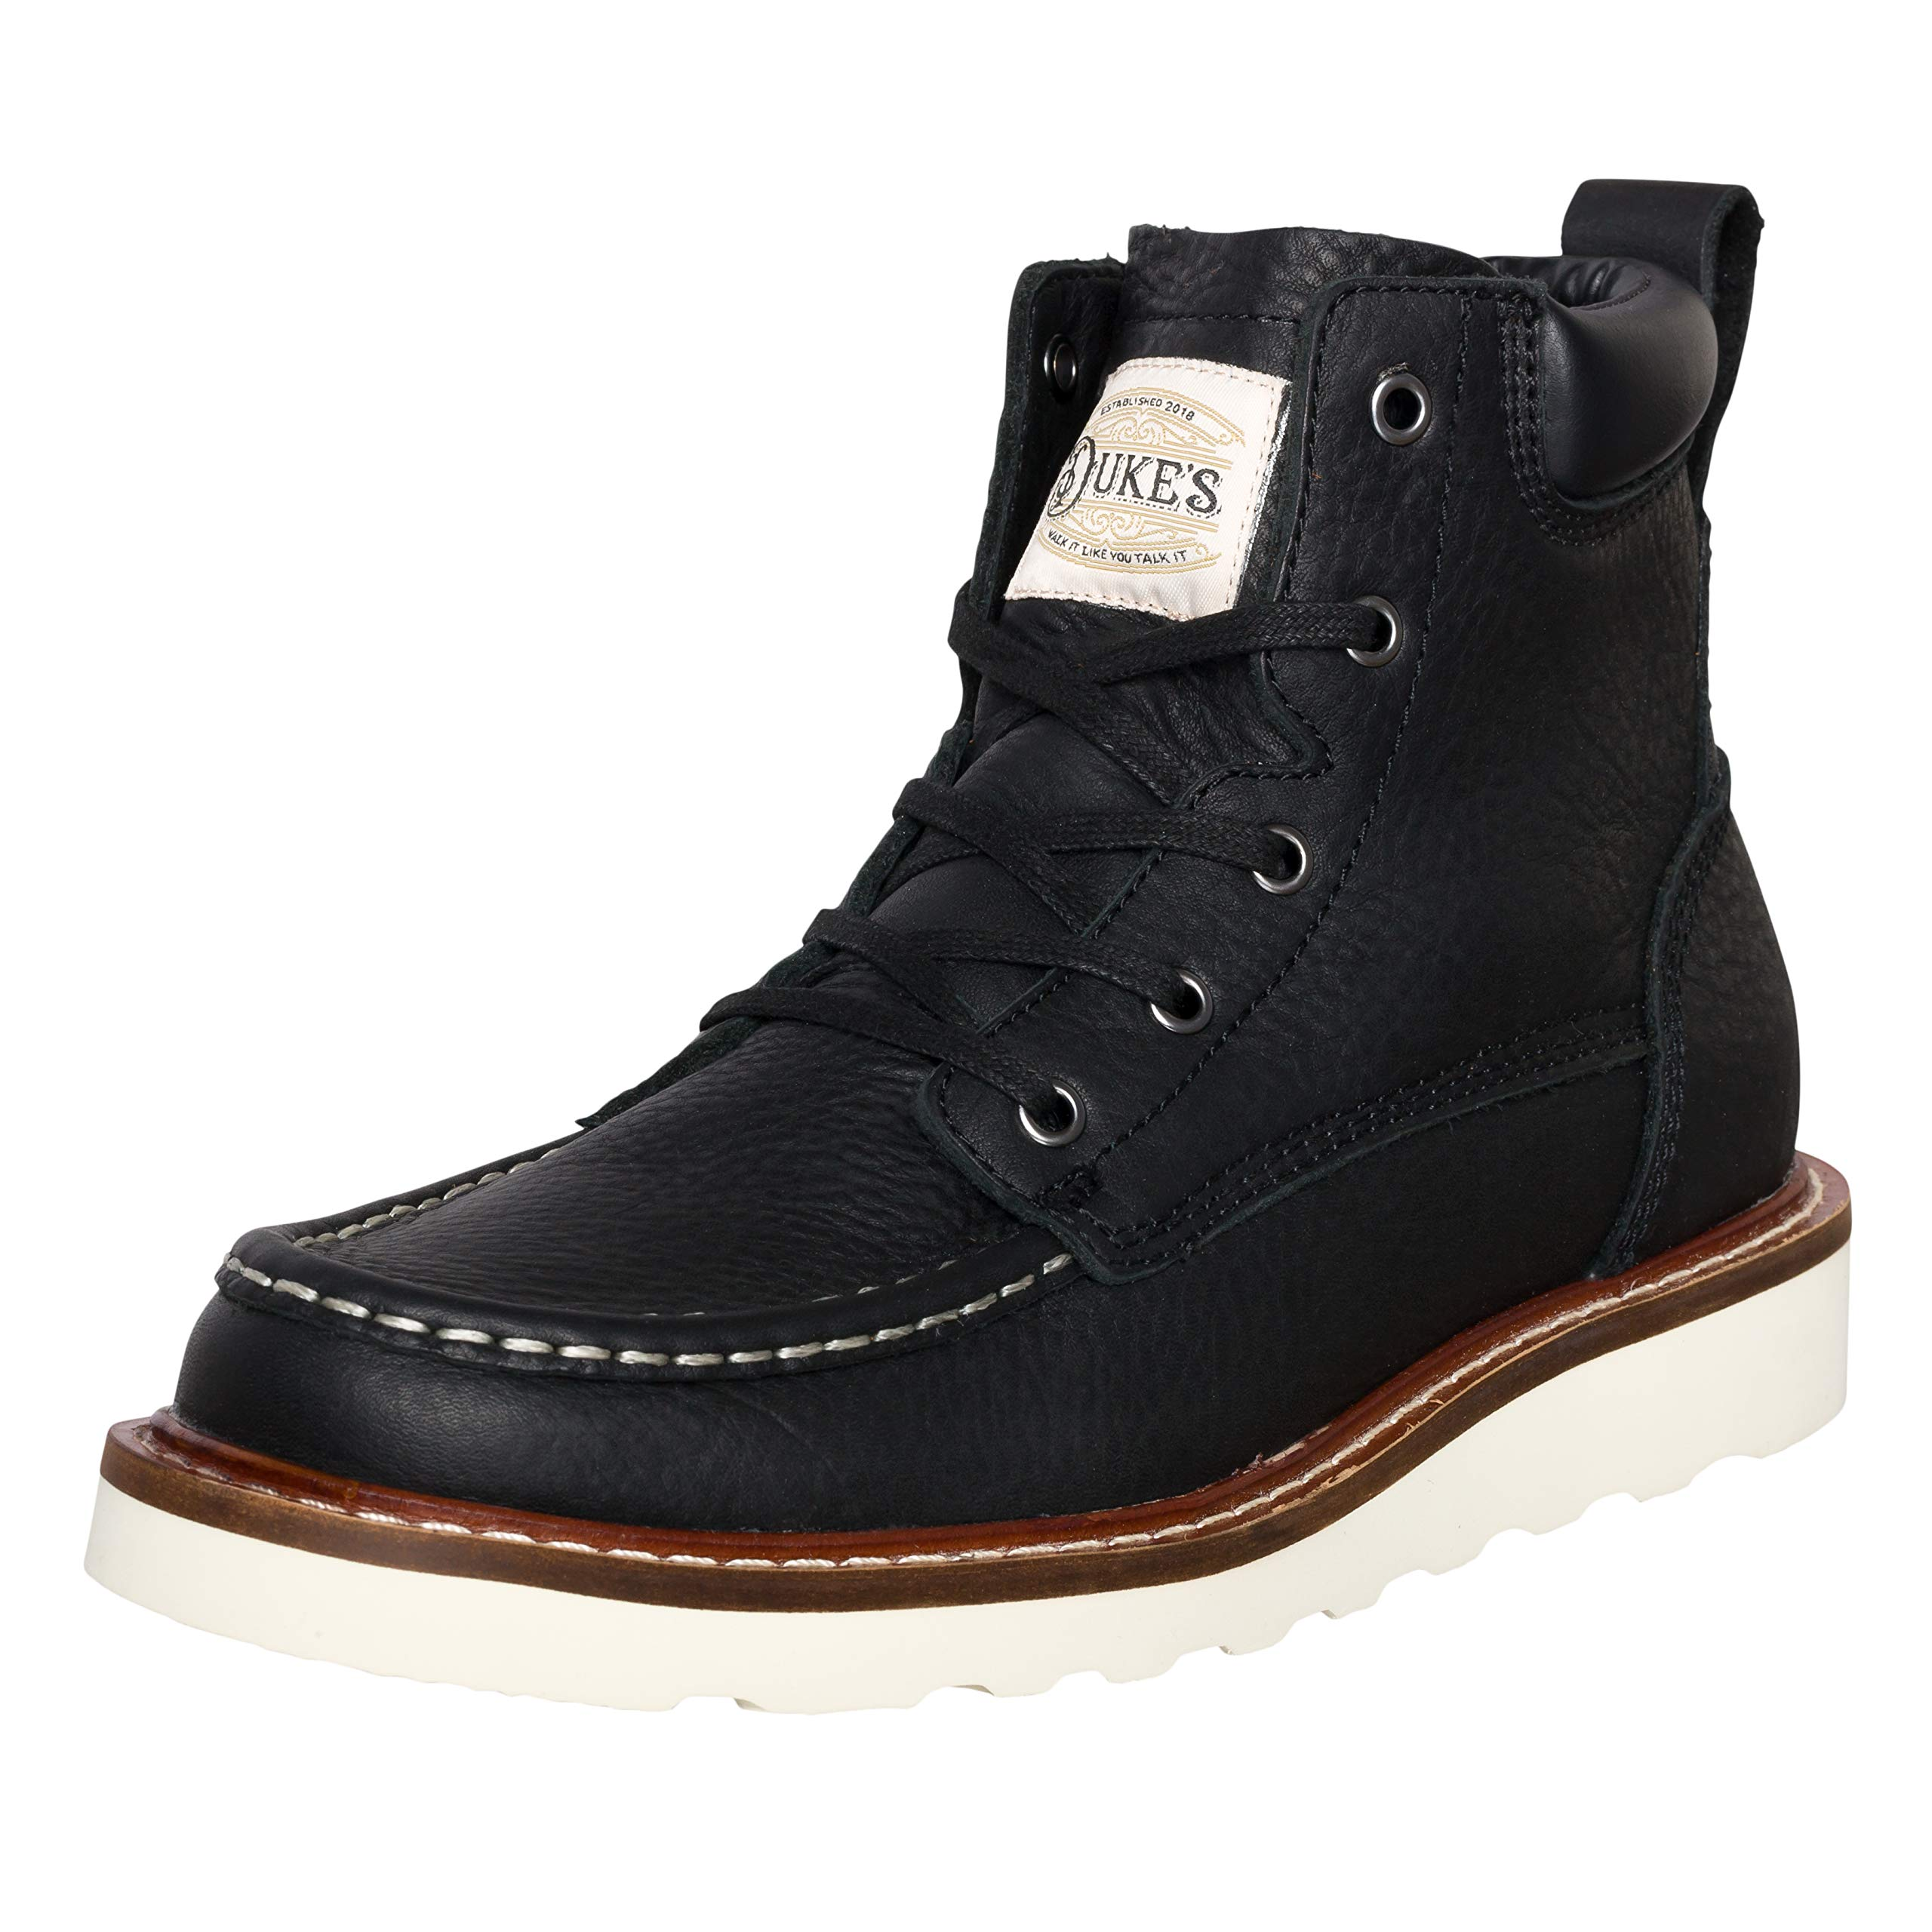 Duke's Mens Boots - Portland Leather Work Boot with Premium Cushion Insole (Black)